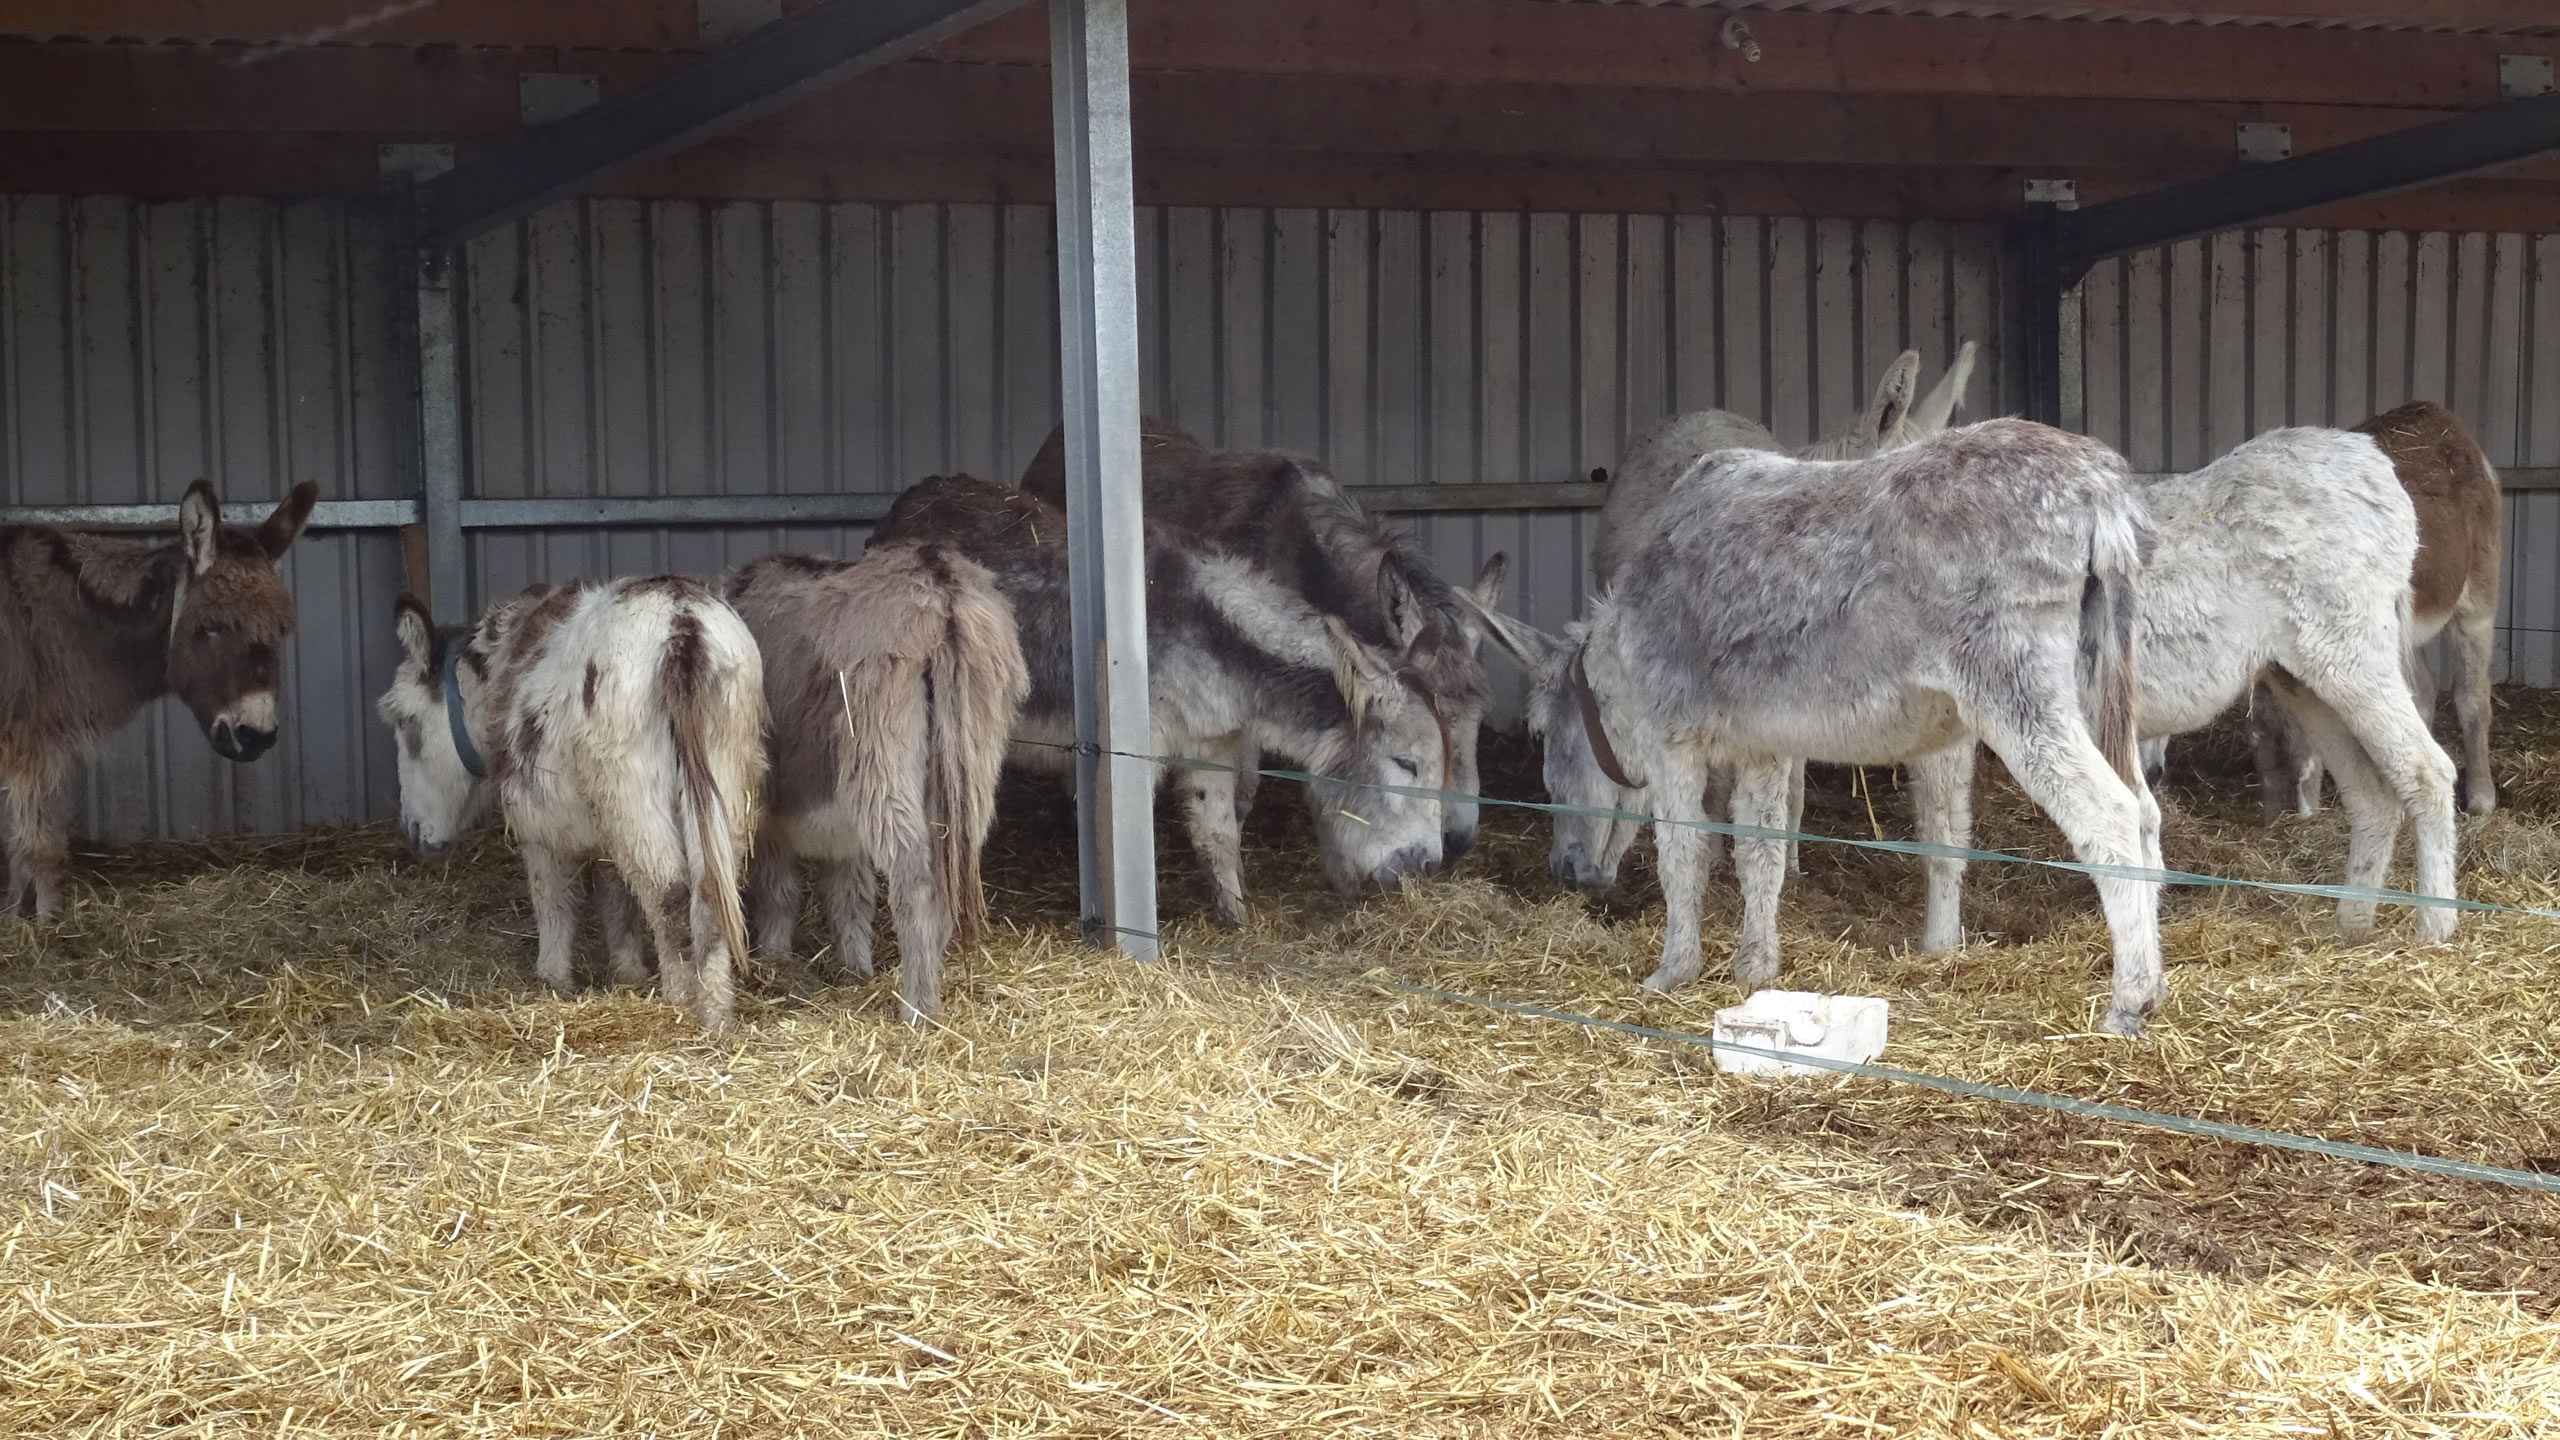 http://www.donkeyrescue.co.uk/wp-content/uploads/2017/02/HomeSlide_Stable1.jpg